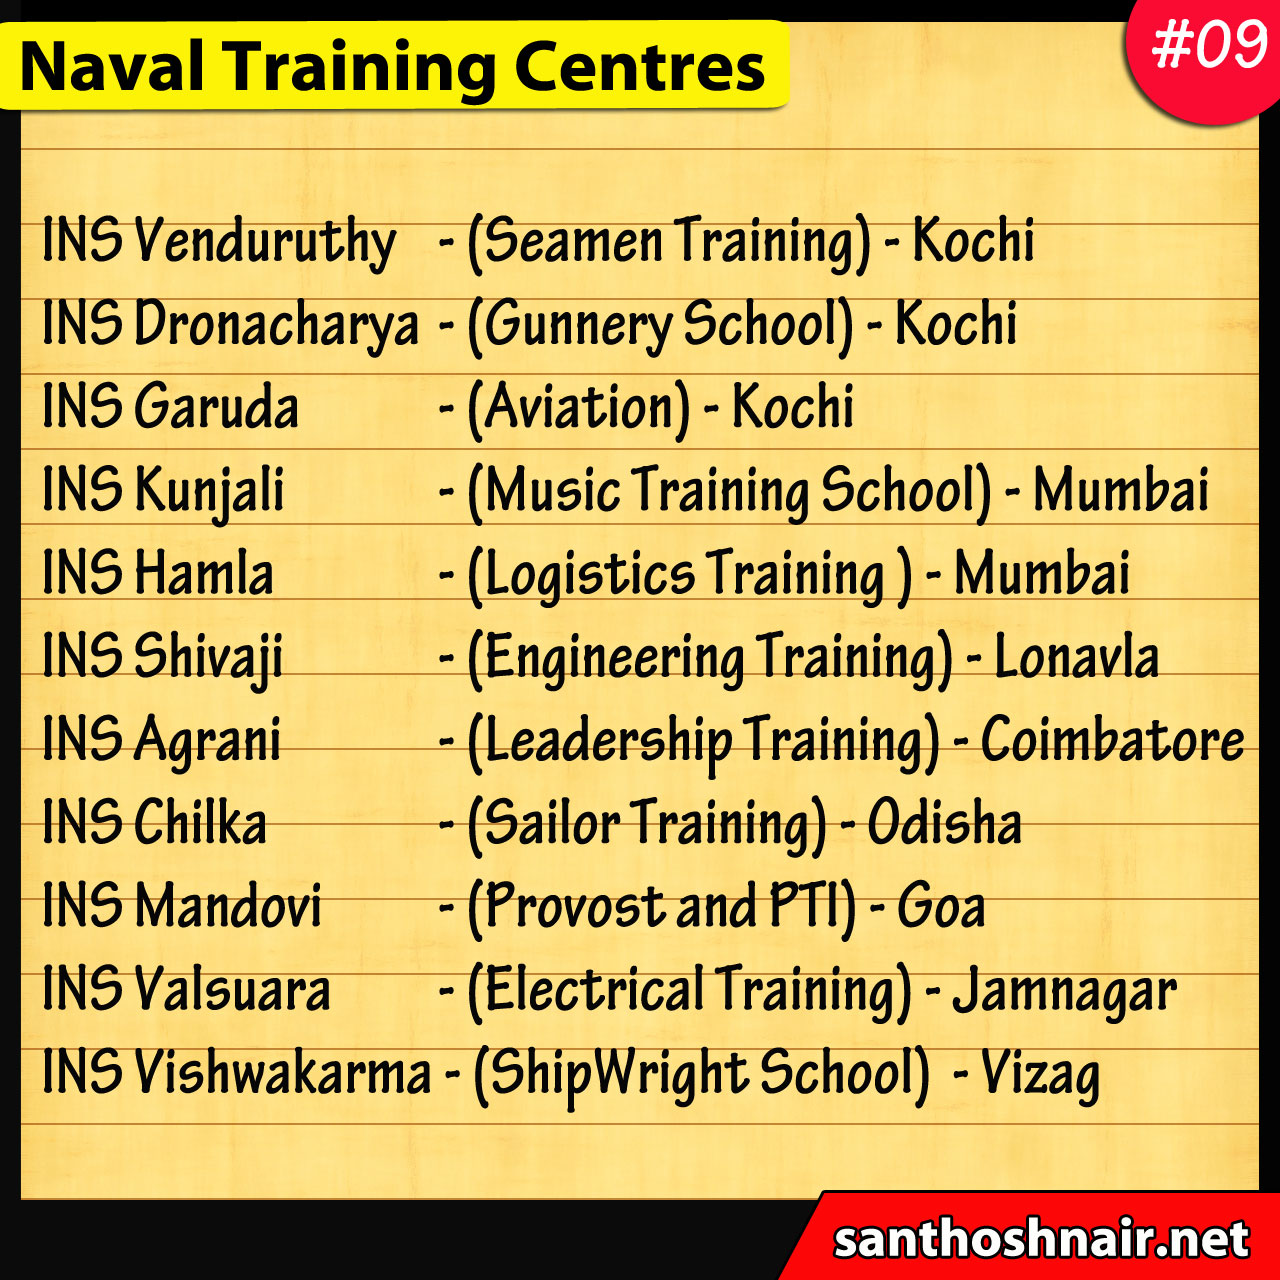 #09 - Naval Training Centres